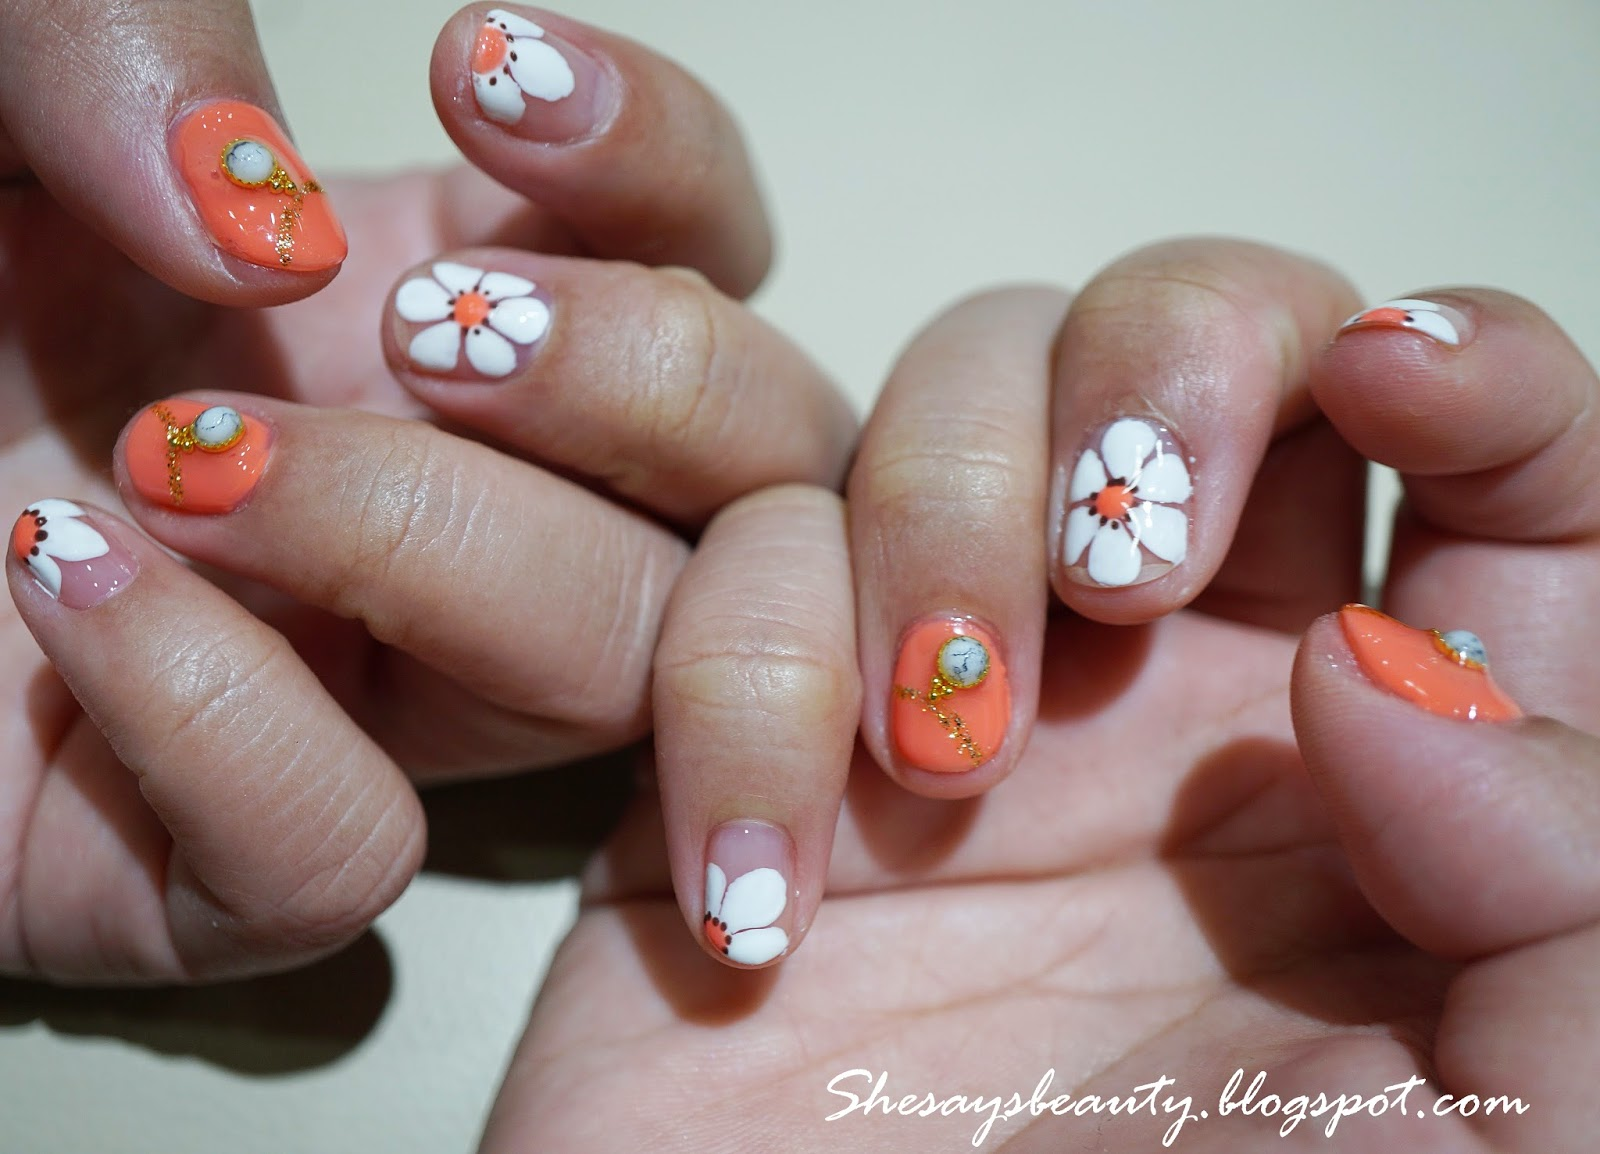 She Says B.E.A.U.T.Y: January with Daisy Coral Gel Nails by Coco ...